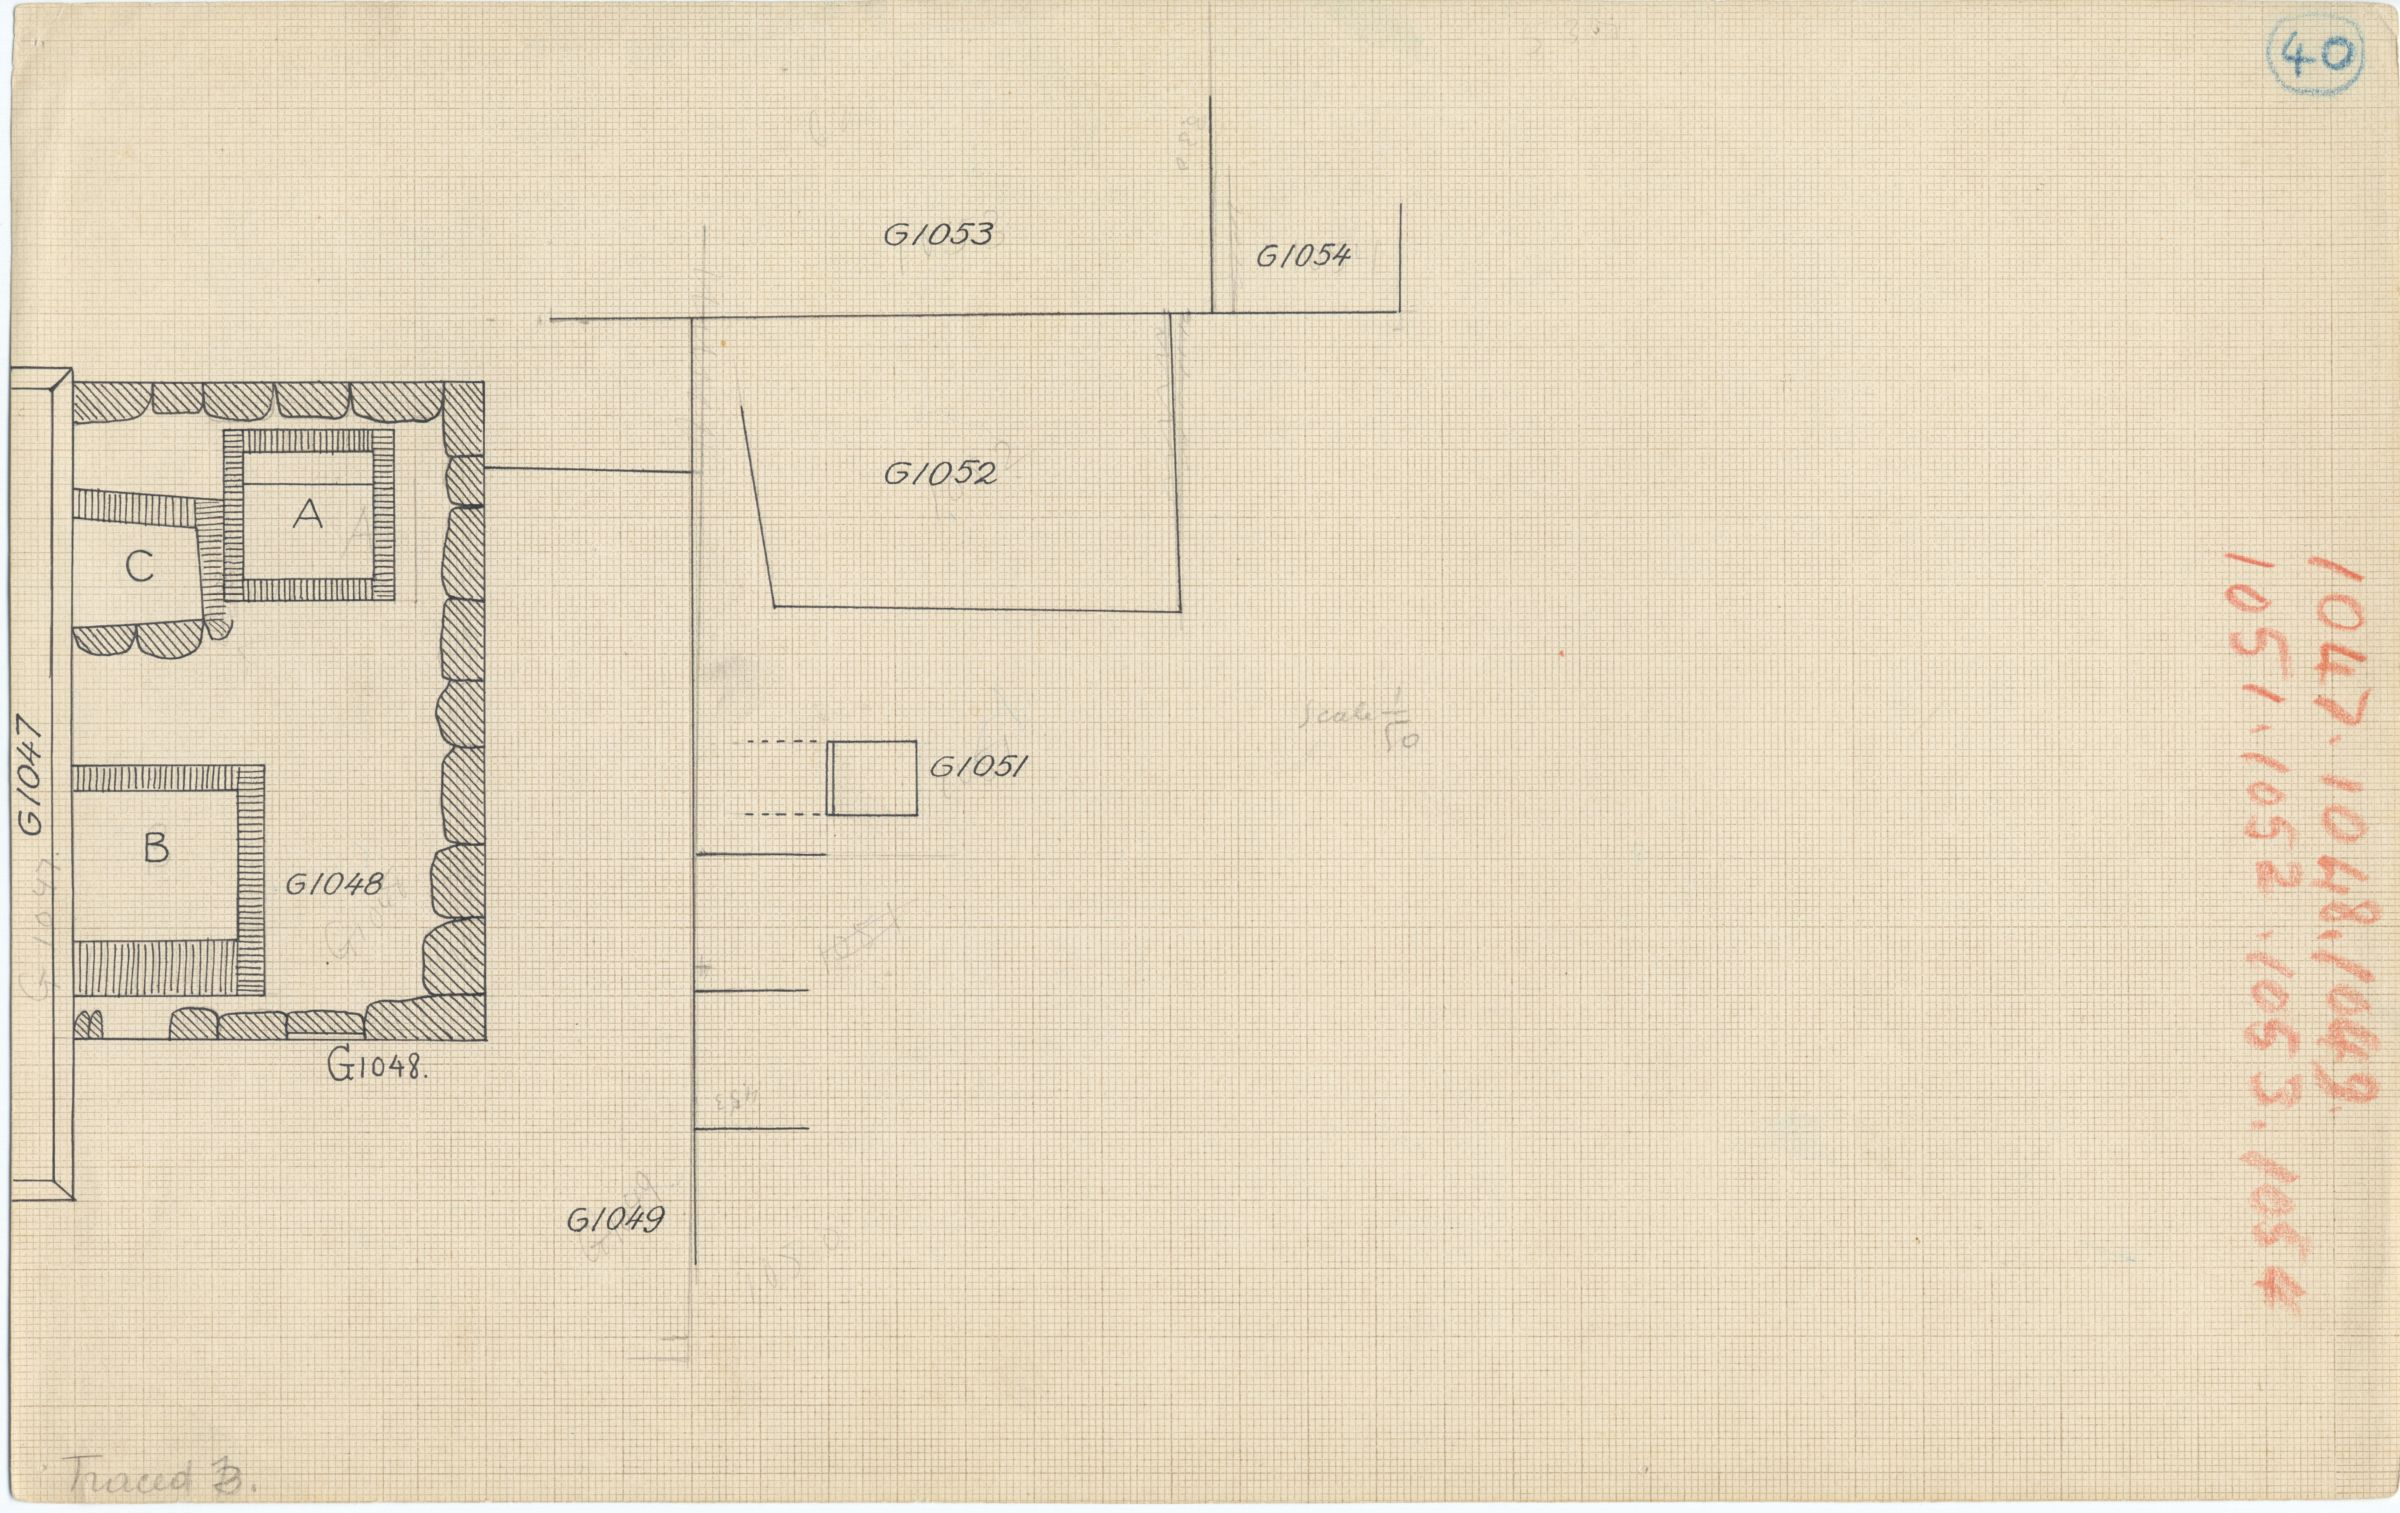 Maps and plans: Plan of G 1048, with position of G 1047, G 1049, G 1051, G 1052, G 1053, G 1054